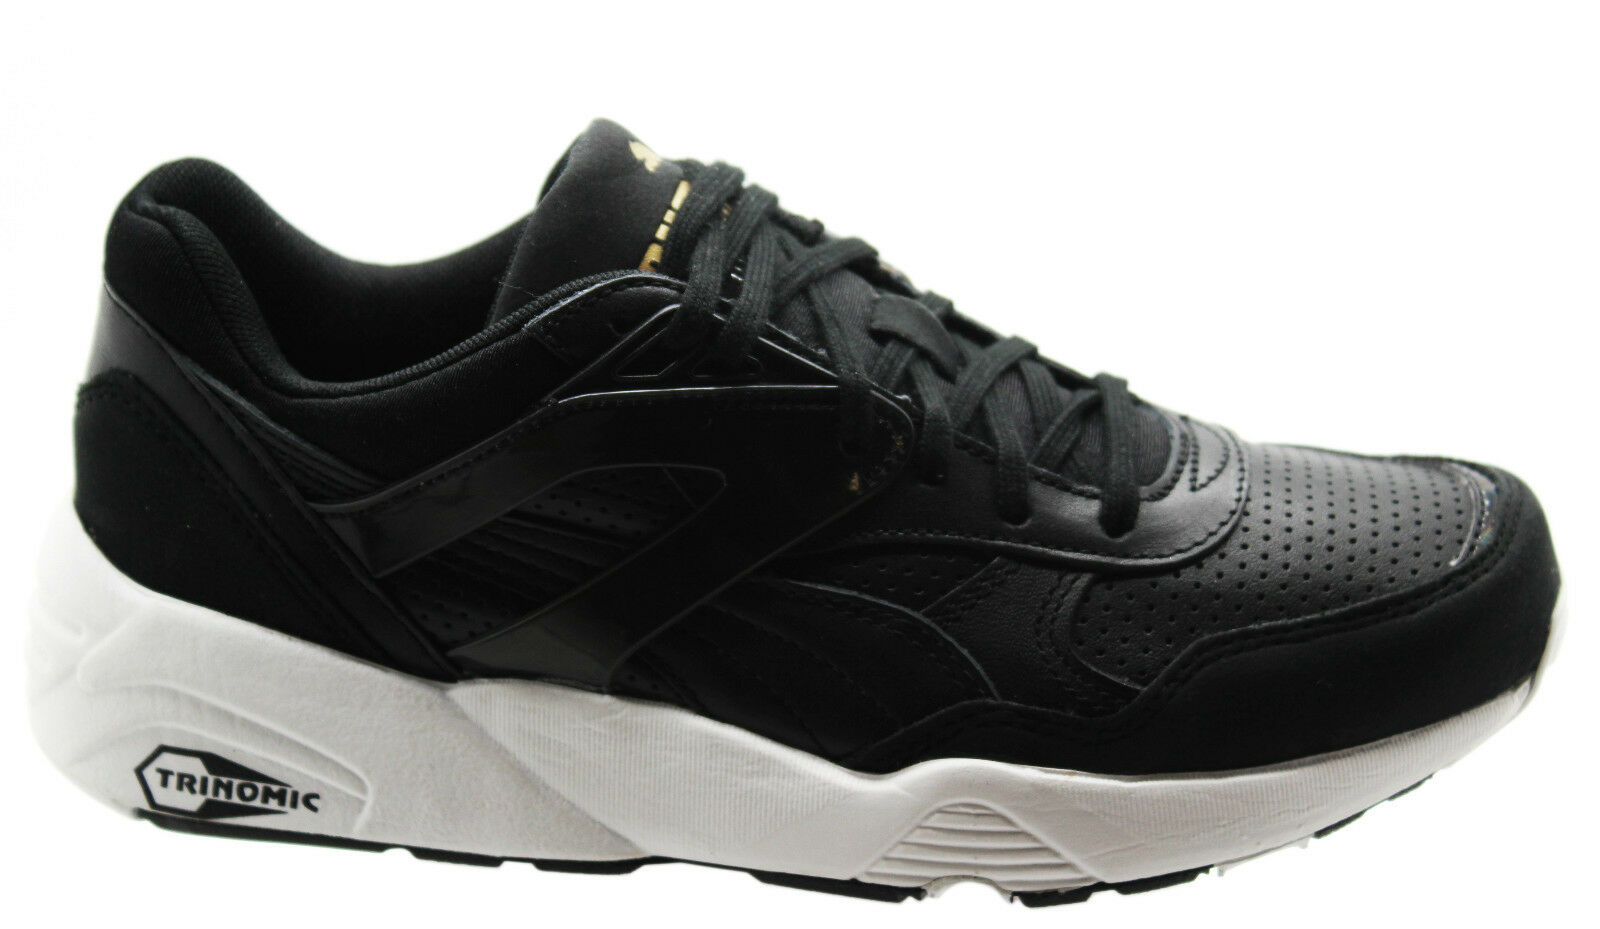 27a46f023b67 Puma Trinomic R698 Core Leather Men Trainers Running Shoes Black ...